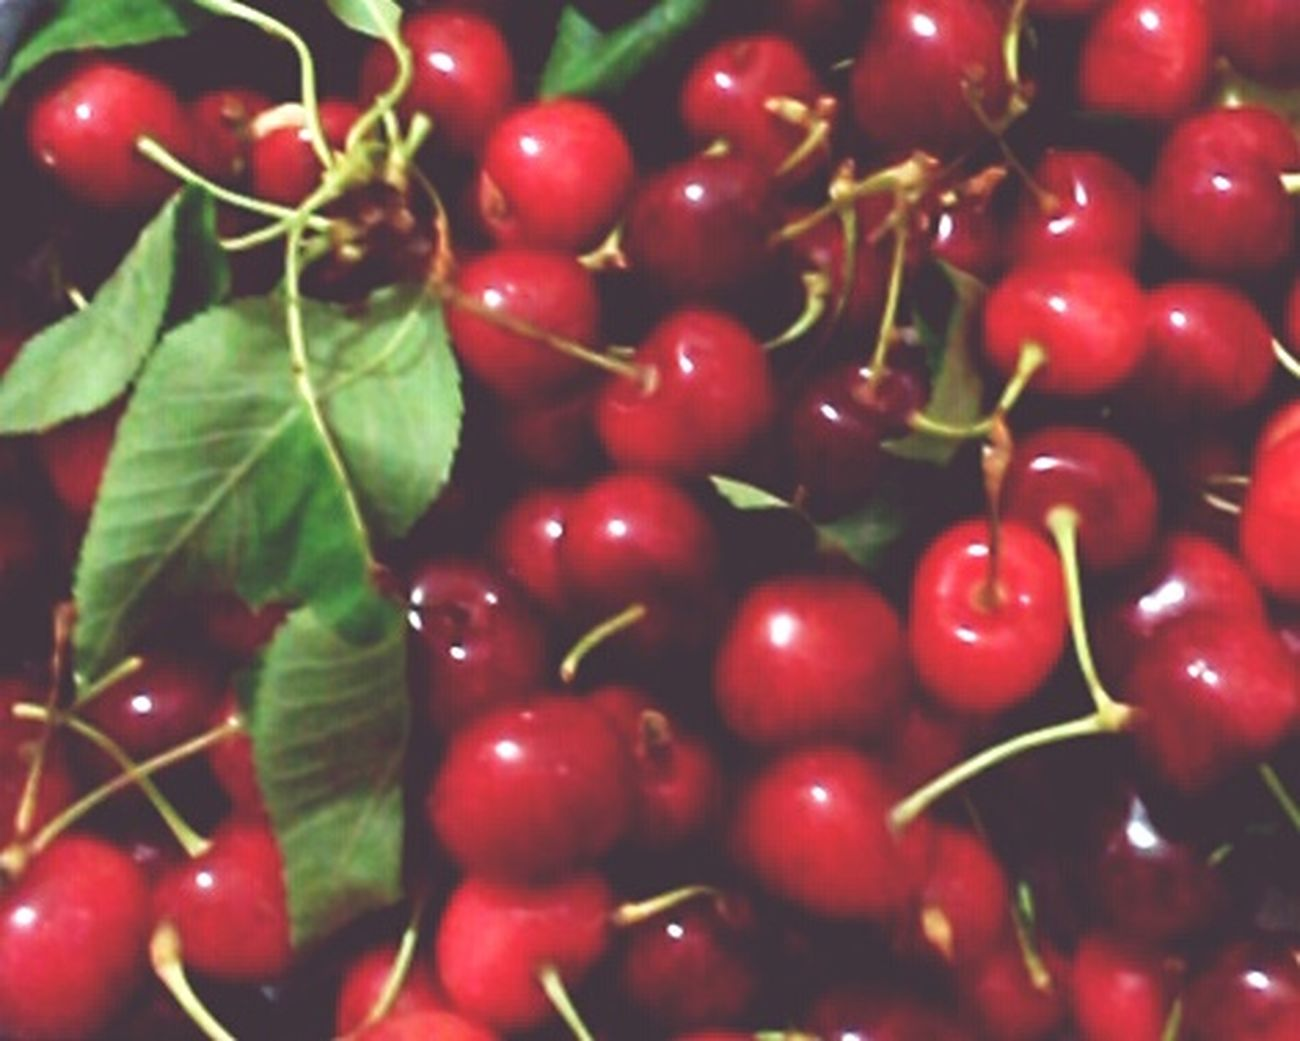 Cherry ○.○ Hello World Hi! Everybody Eyeem Market EyeEm Best Edits Eyeem Turkey EyeEm EyeEm Best Shots EyeEm Team EyeEm Gallery Taking Photos I'm Good Nopeople Nature_collection Naturelovers Cherrys Cherryred Ereğli Good Times World Ankara Turkey